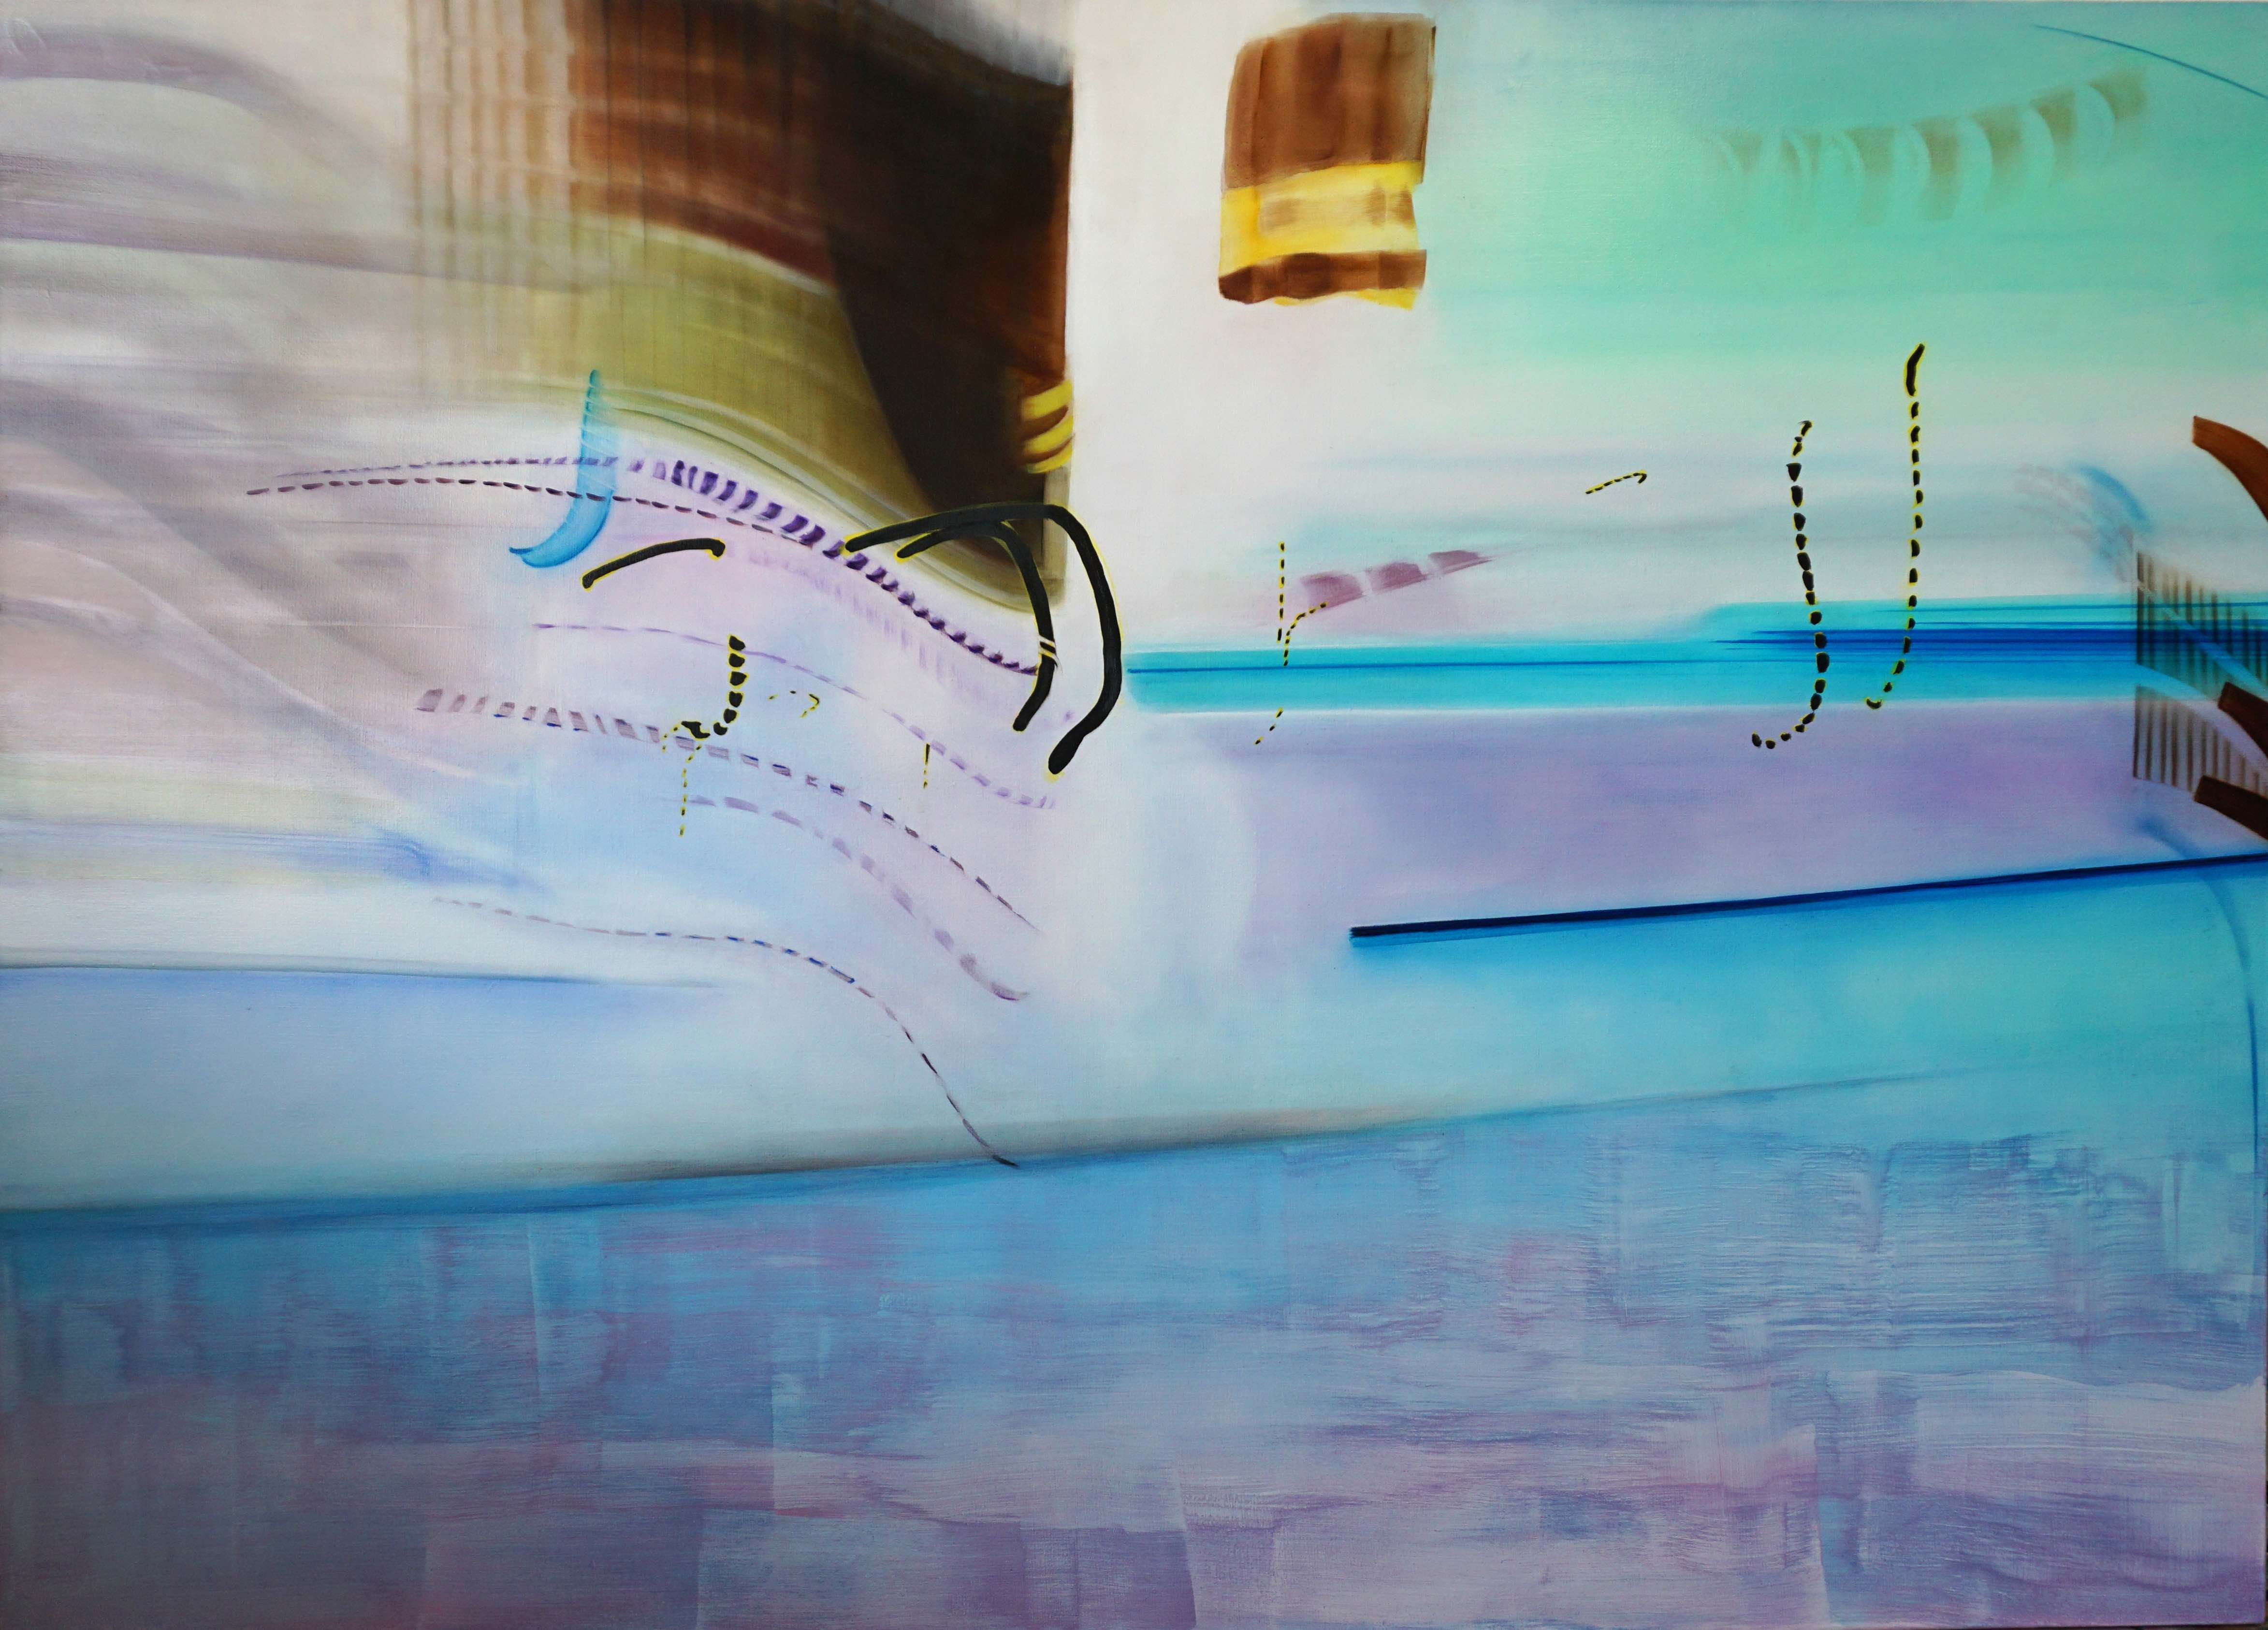 Ahlfors-Riikka_Floating-158x 220cm-oil-on-canvas_2019